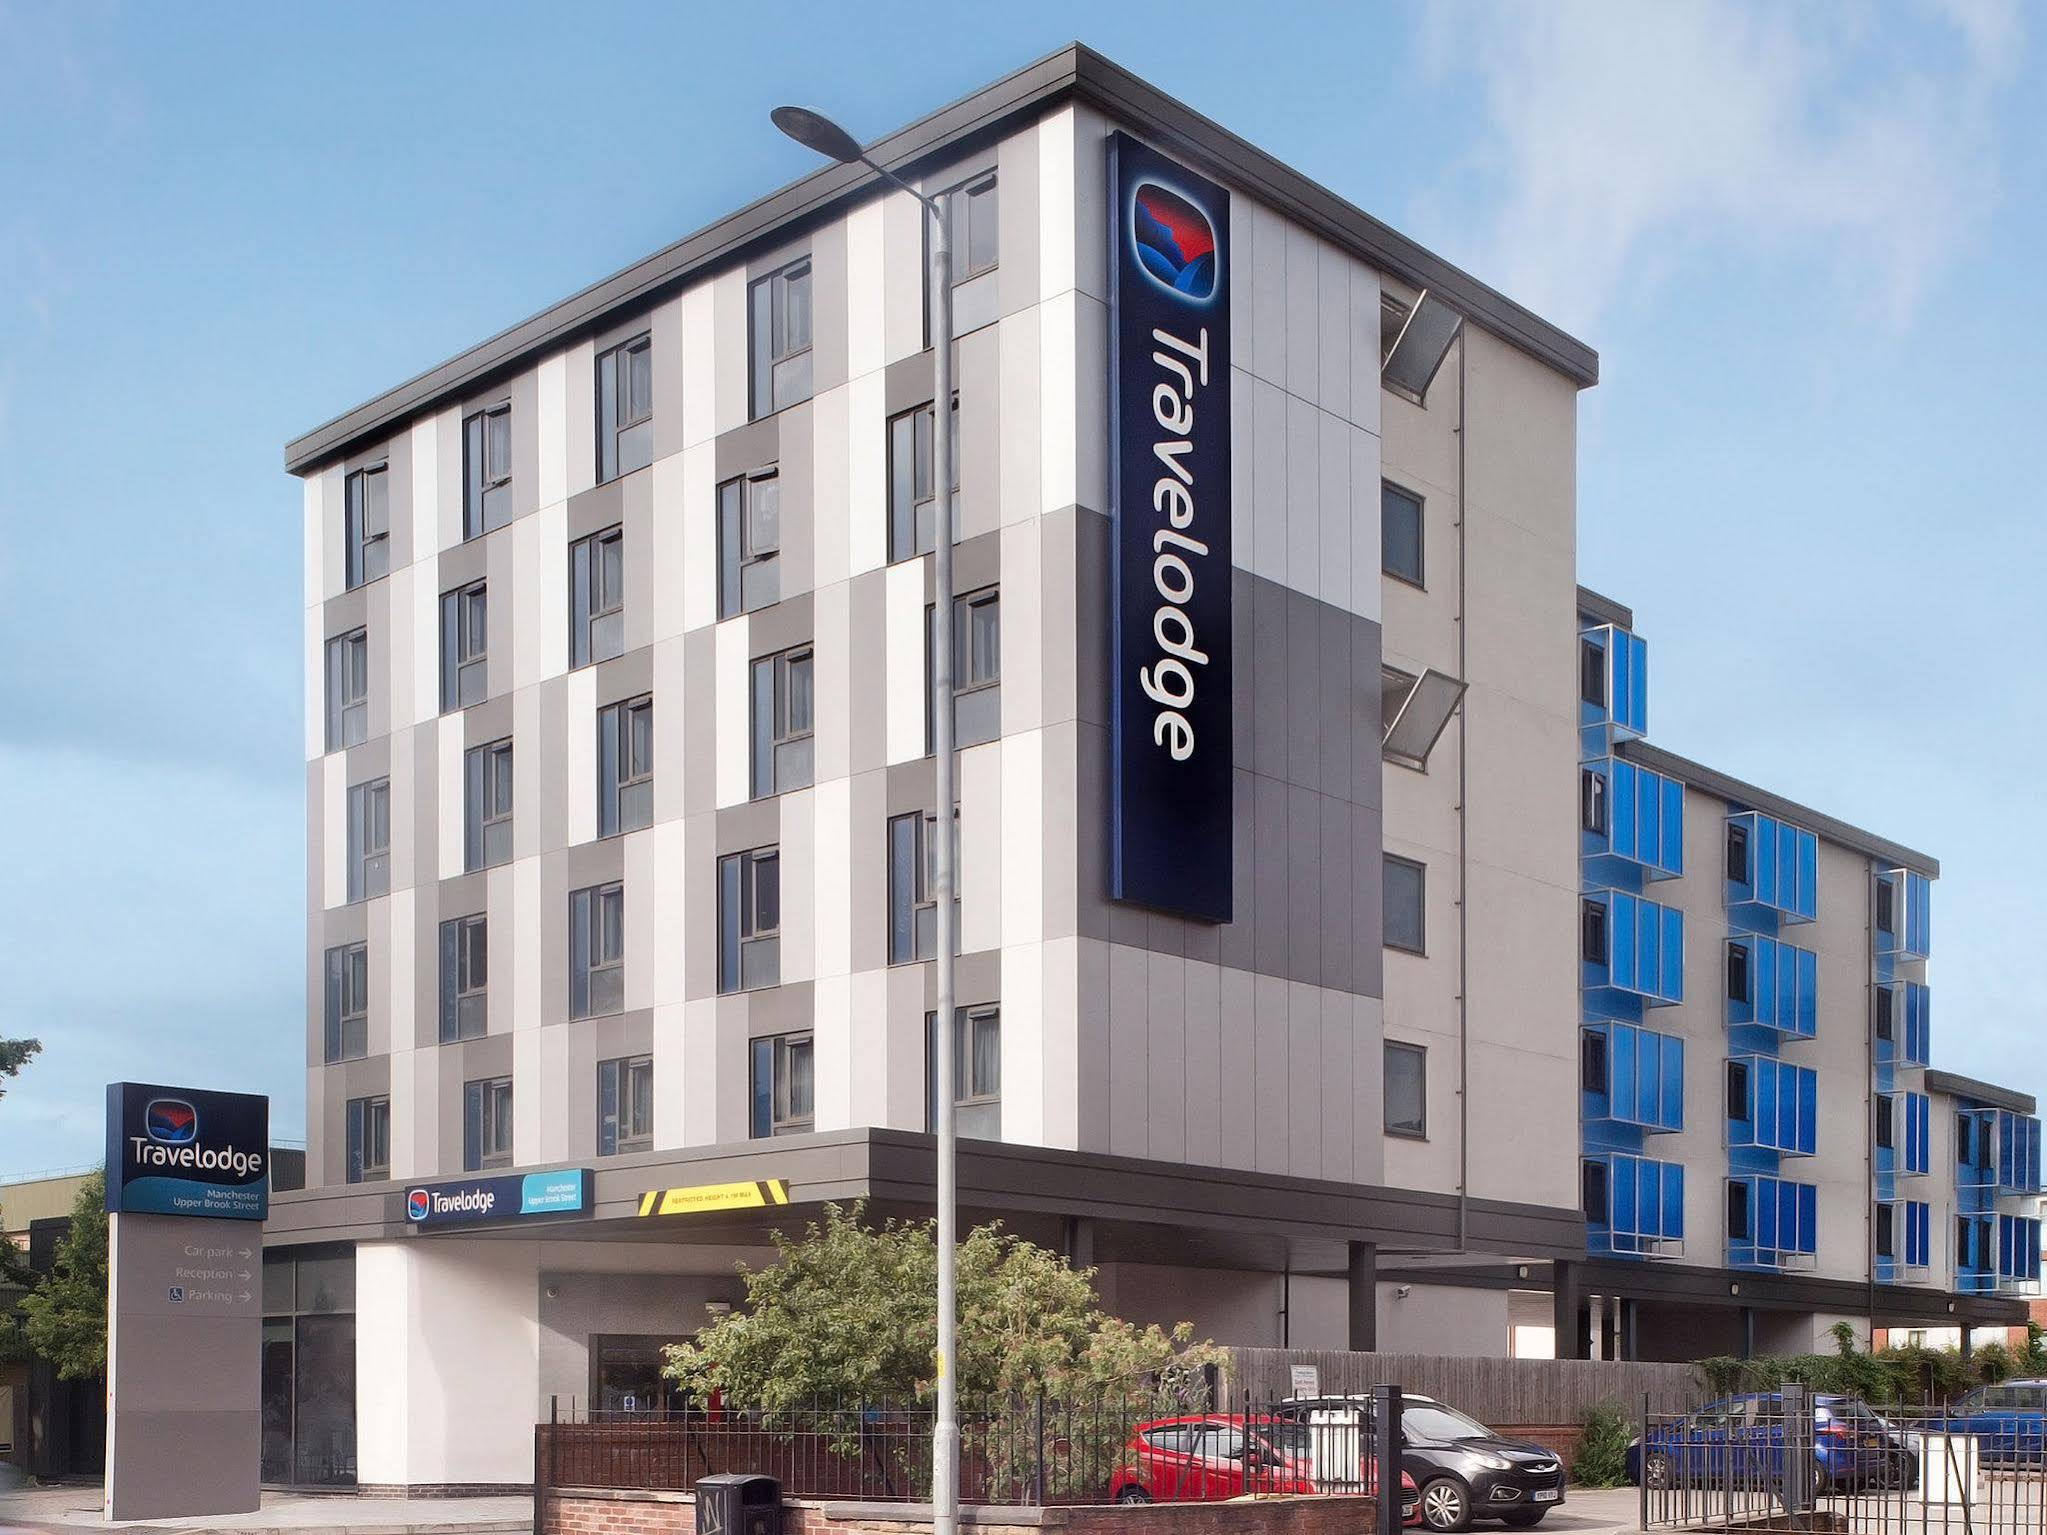 Travelodge Manchester Upper Brooks Street